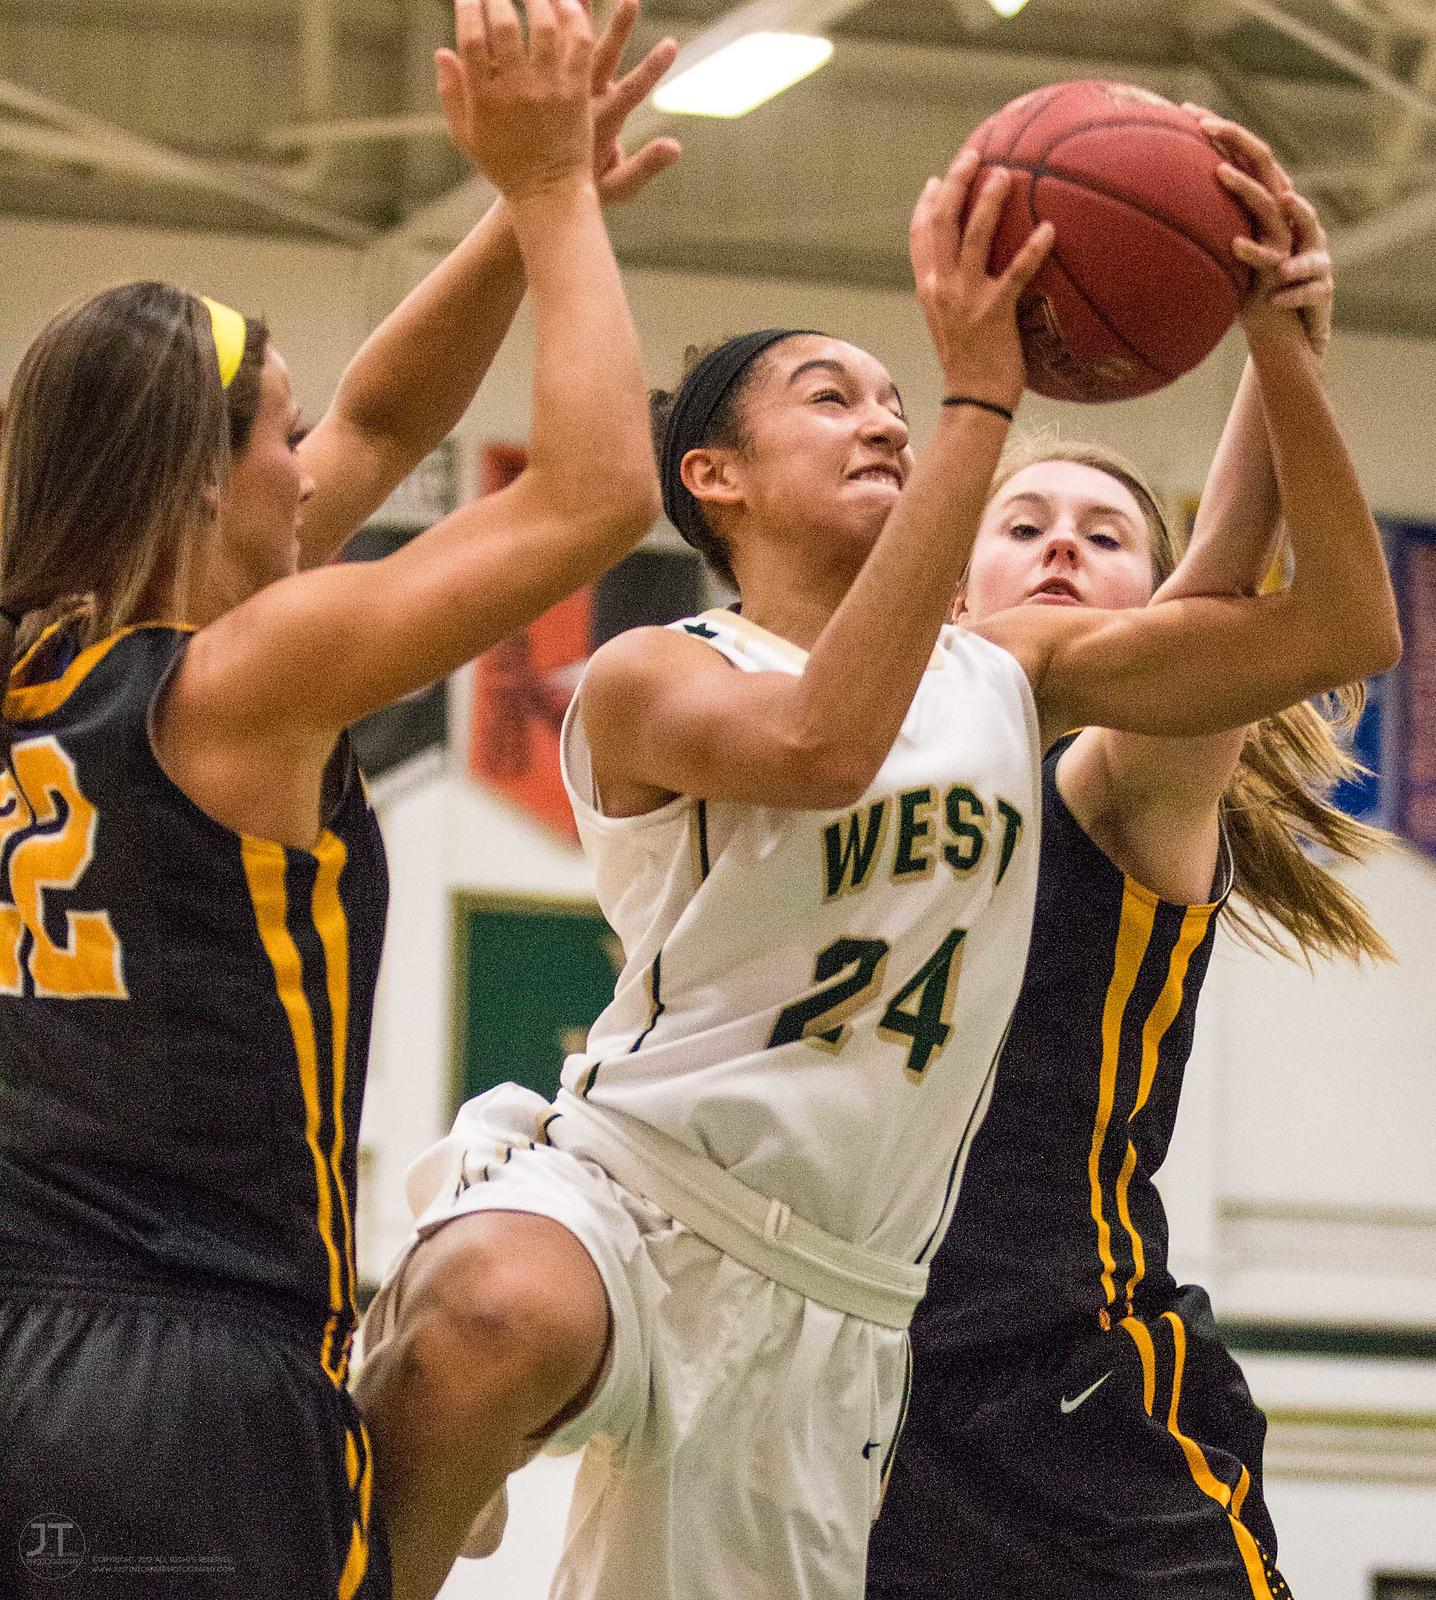 Girls Basketball Iowa City West vs Bettendorf 1-21-14